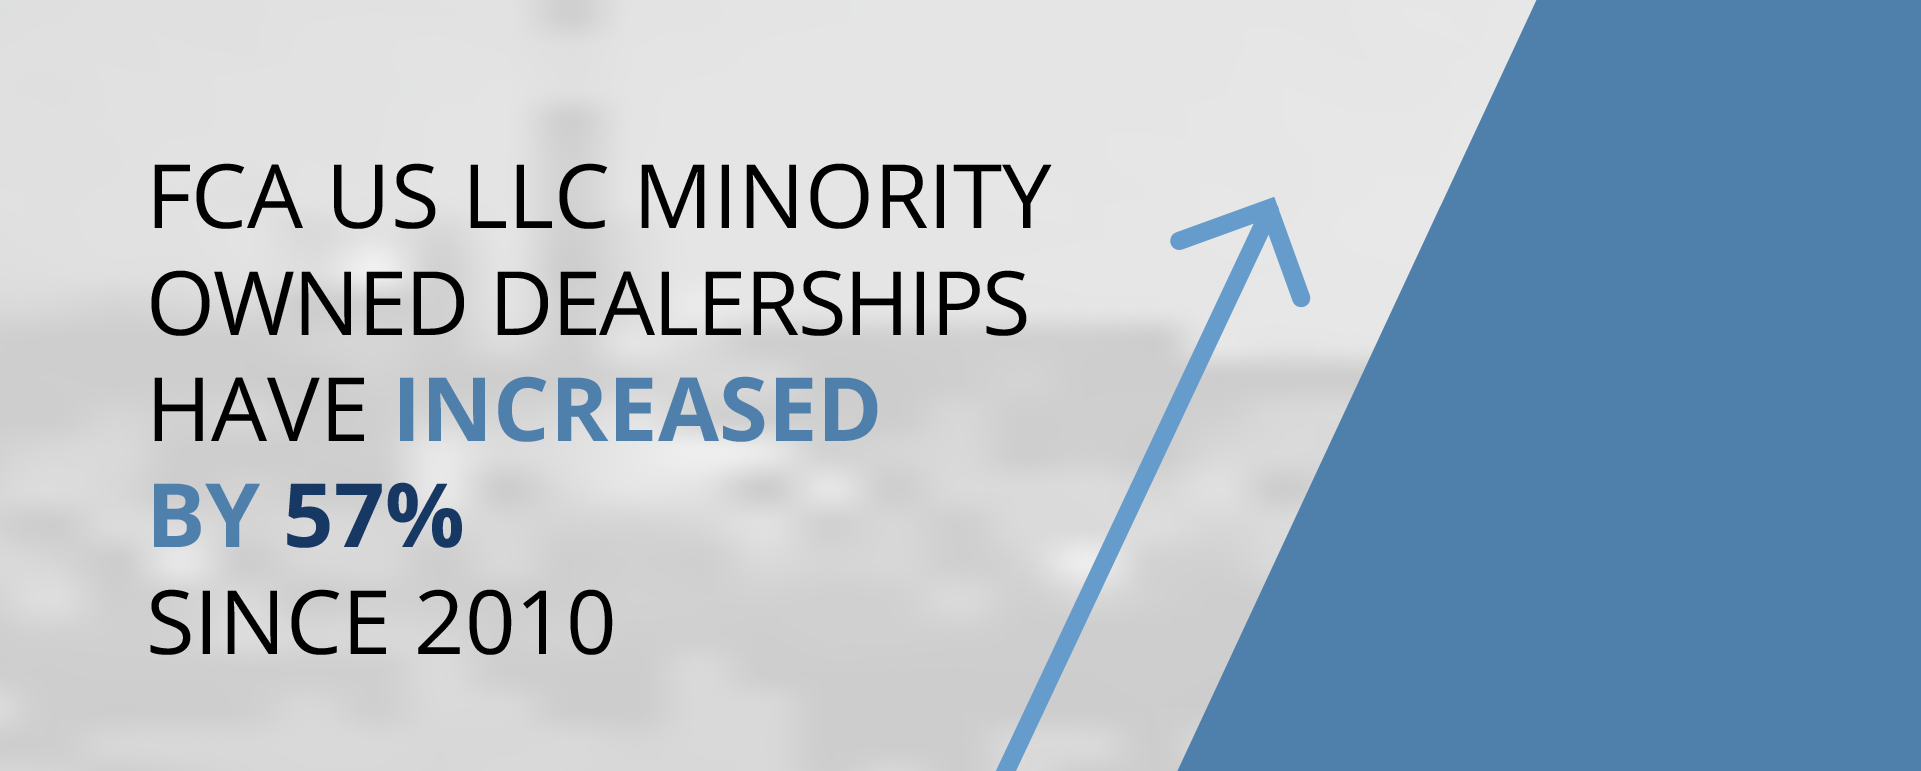 FCA's minority owned dealerships have increased by 57% since 2010